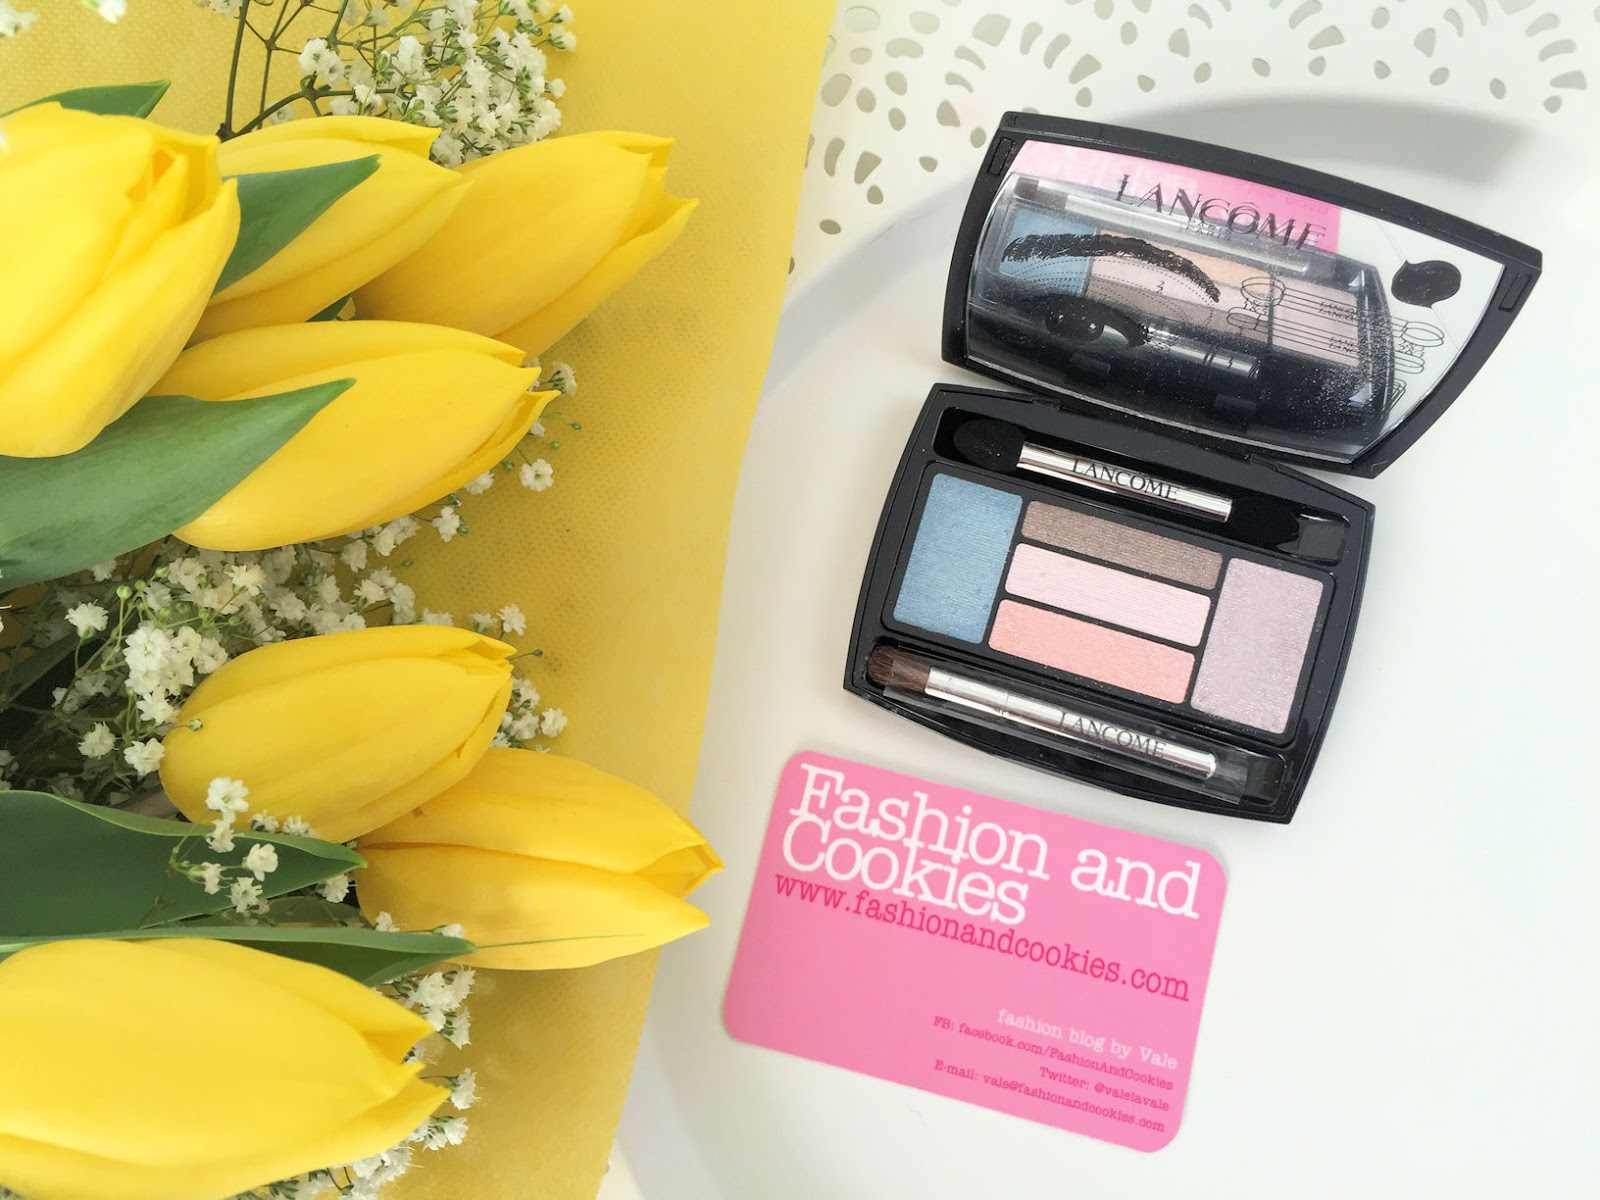 Lancôme makeup collection for Spring 2016 My Parisian Pastels eye makeup on Fashion and Cookies beauty blog, beauty blogger